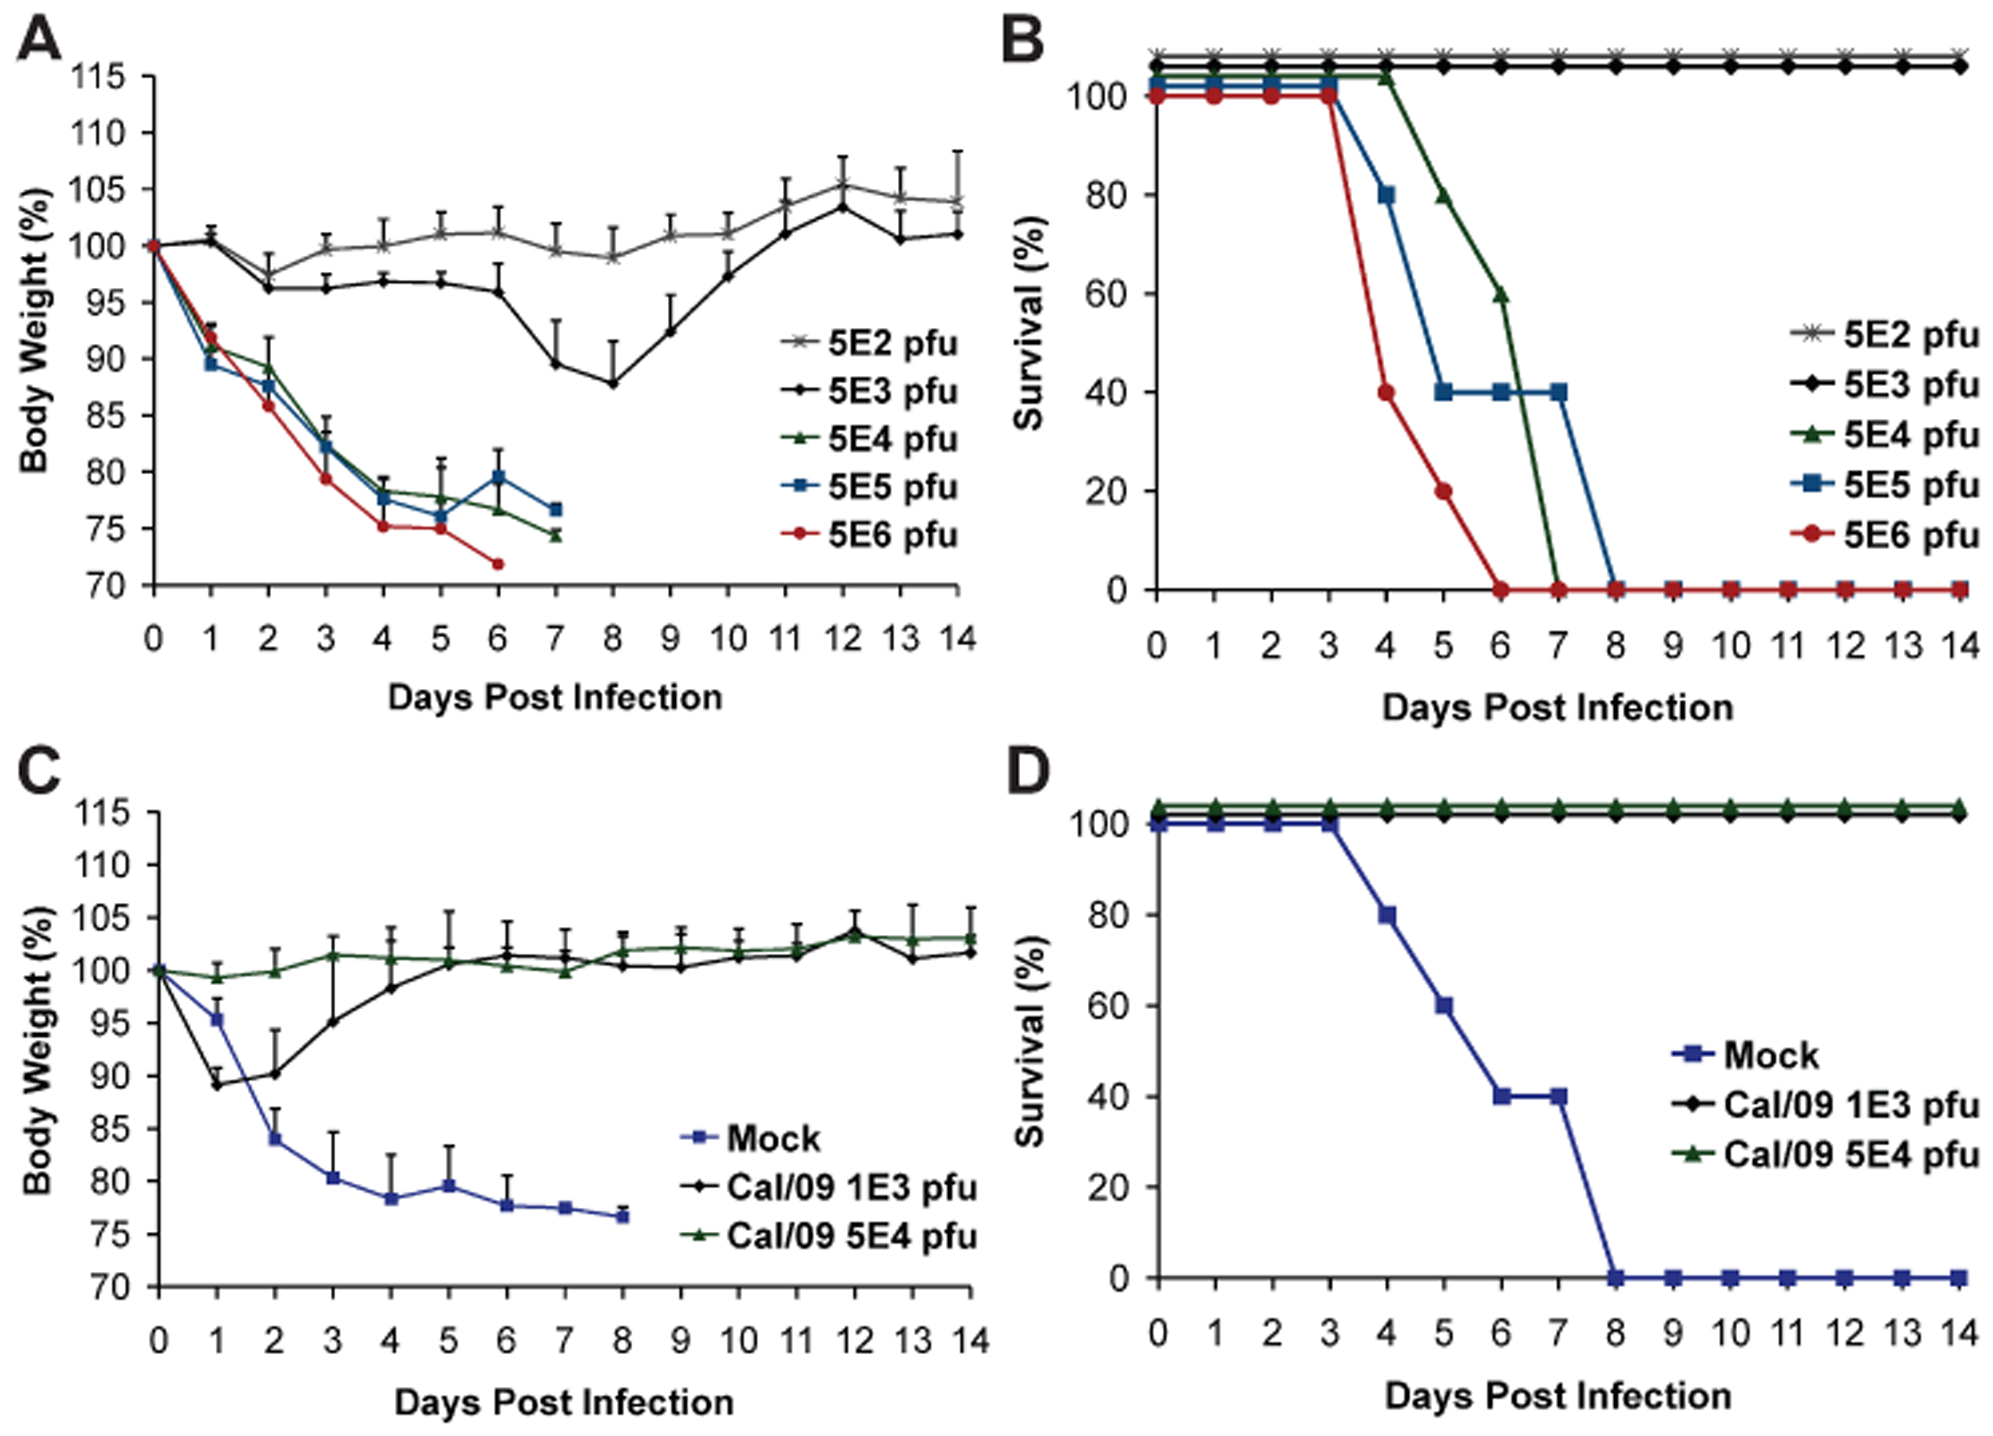 Prior infection with Cal/09 virus cross-protects mice against the lethal challenge with Neth/09 isolate.